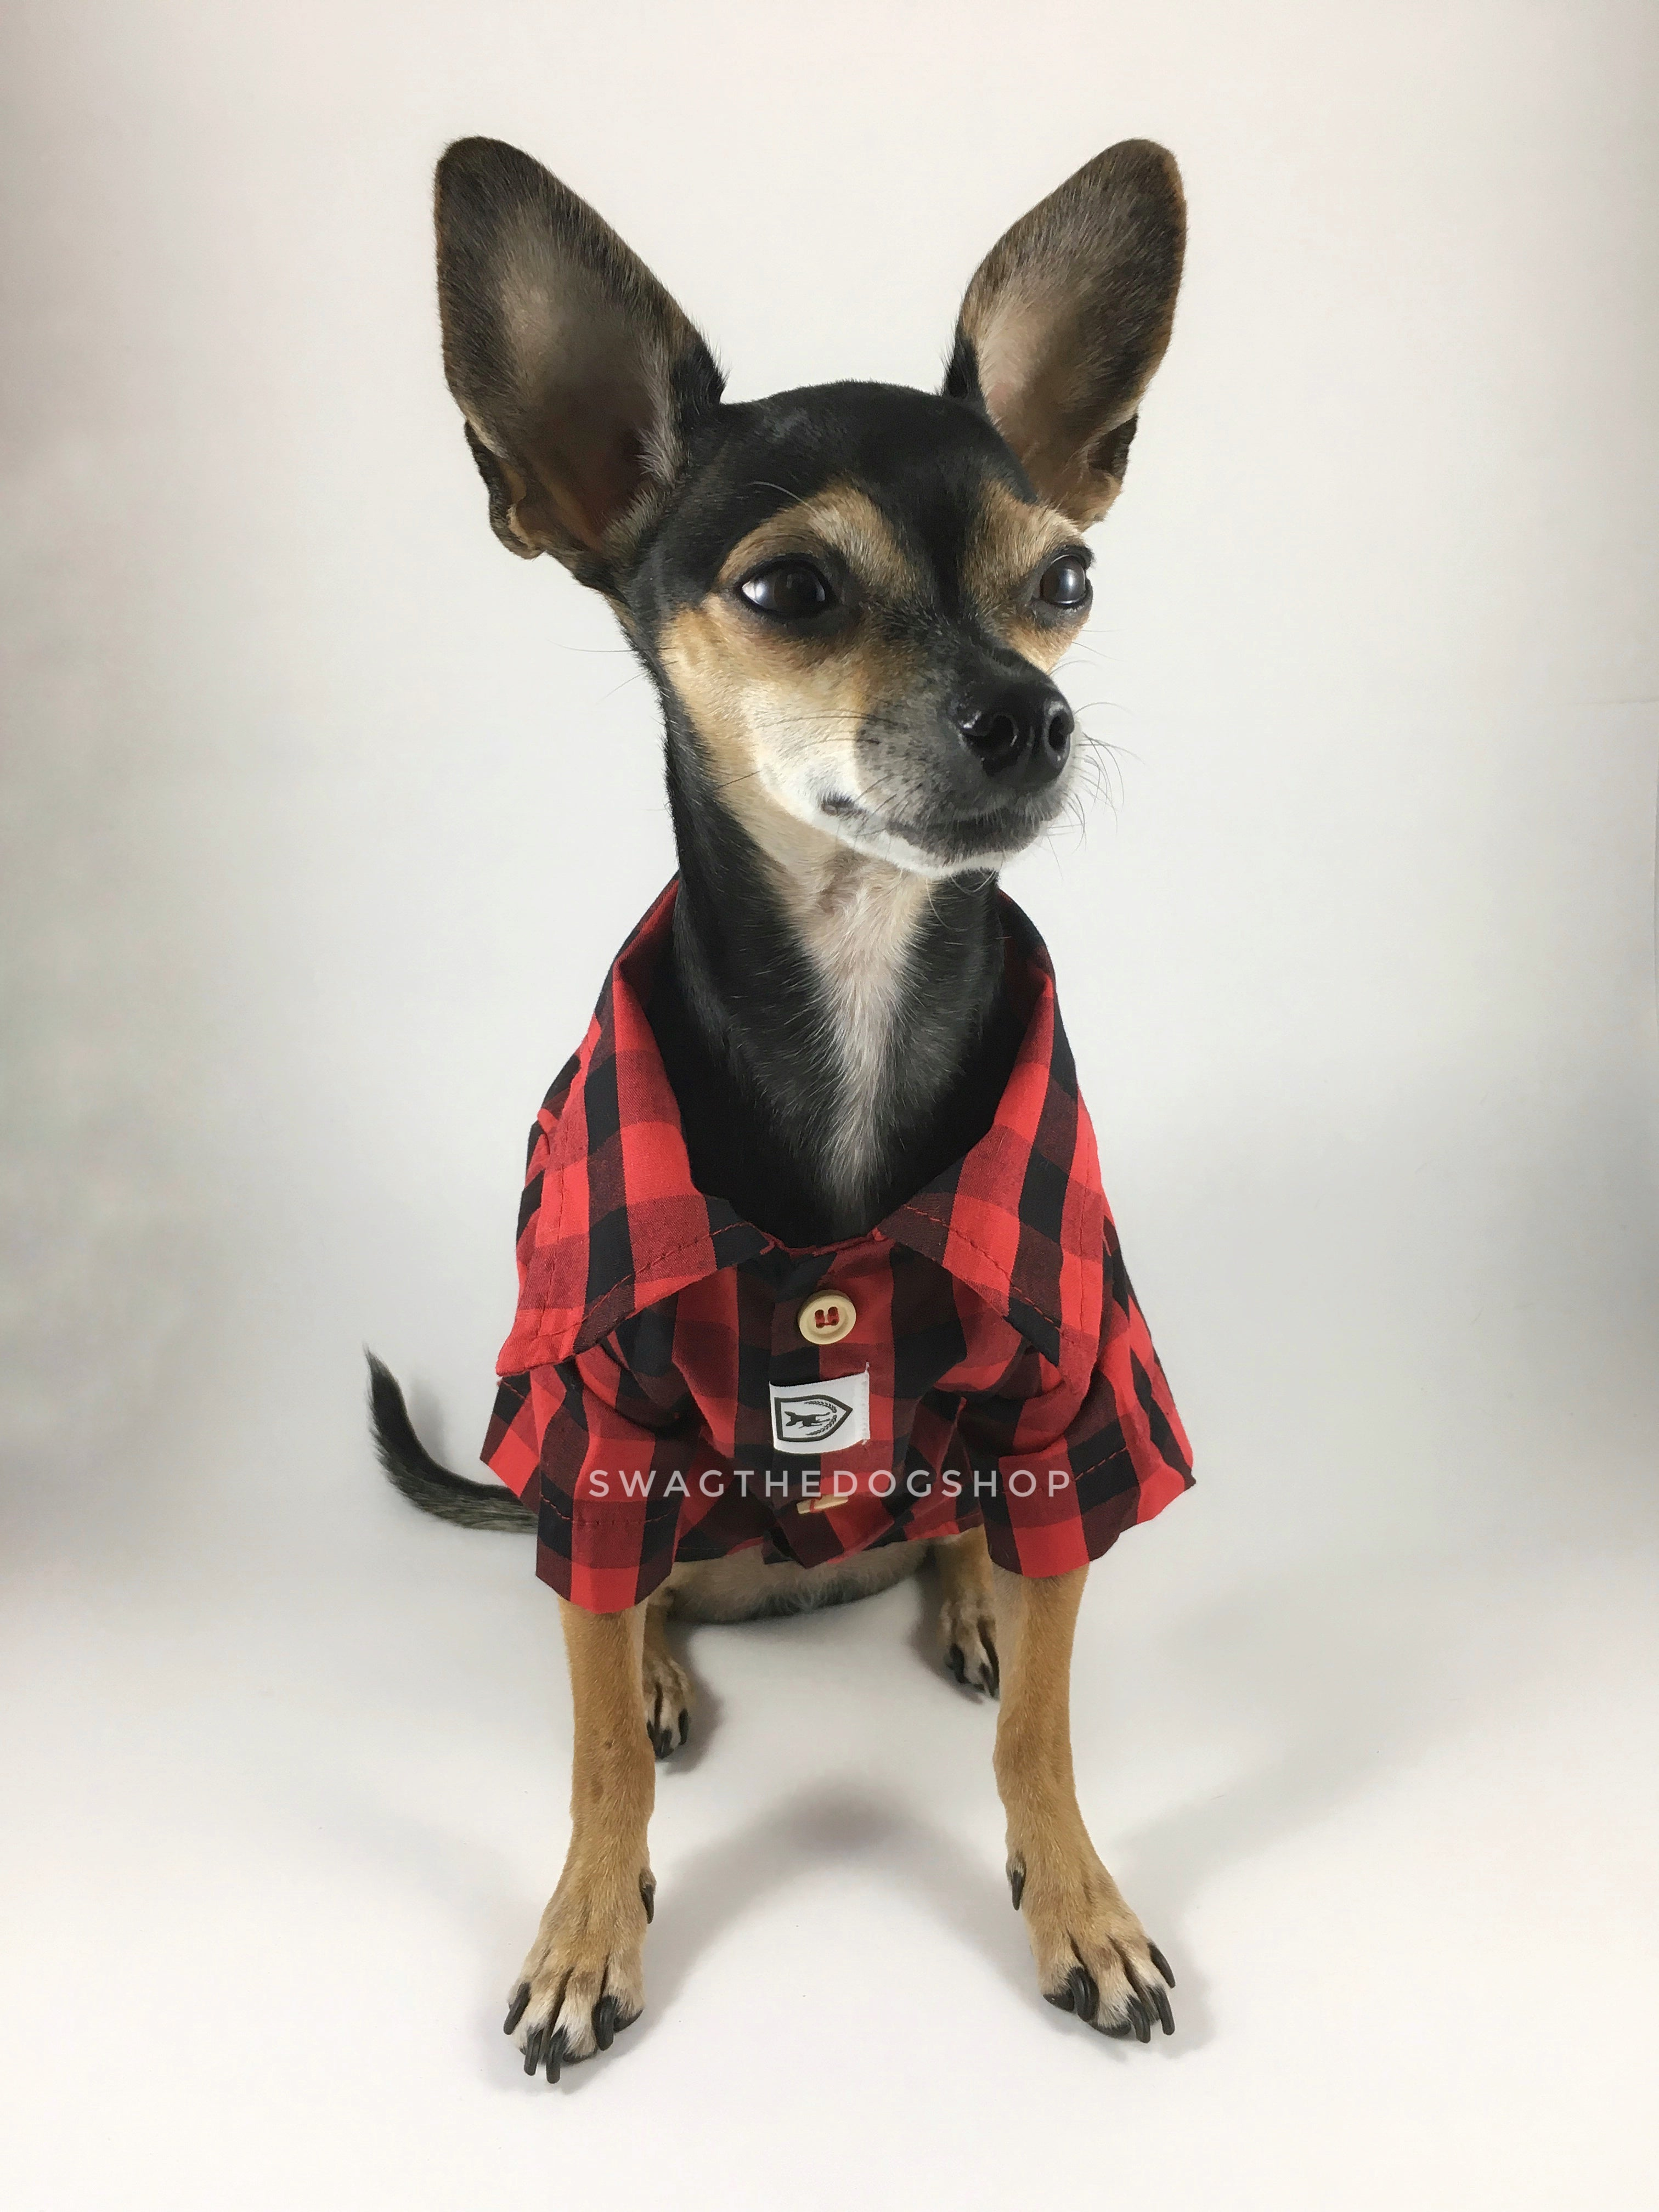 Kenora Summer Shirt - Full Front View of Cute Chihuahua Dog Wearing Shirt. Black and Red Gingham Shirt